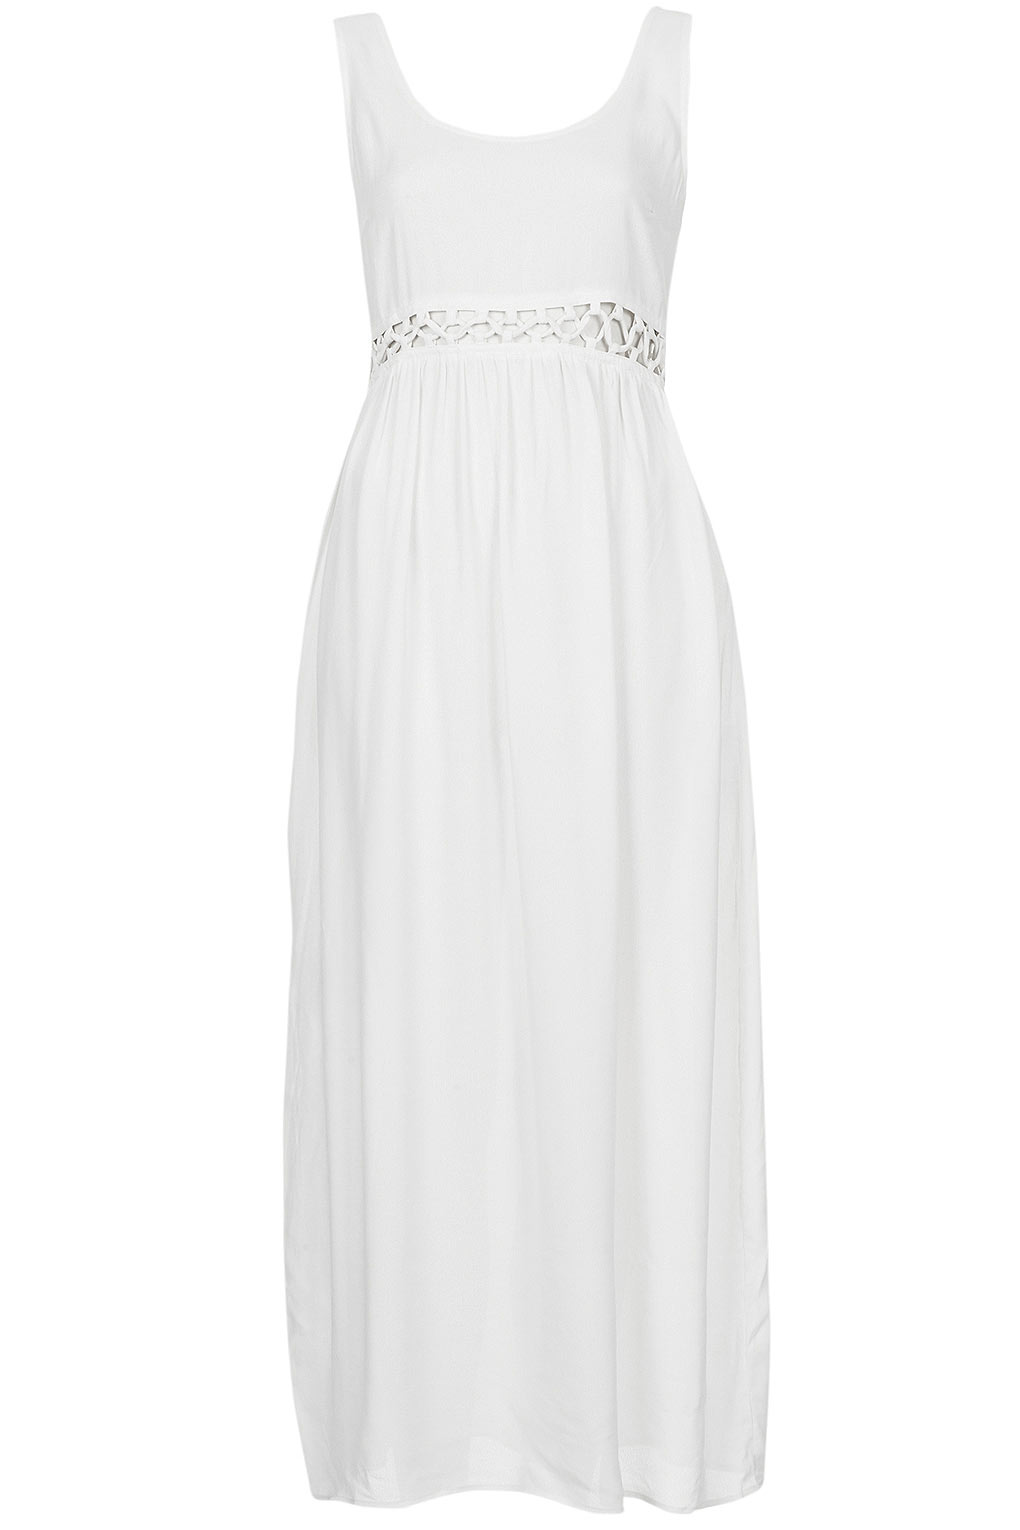 Lyst Topshop Petite Lace Waist Maxi Dress In White